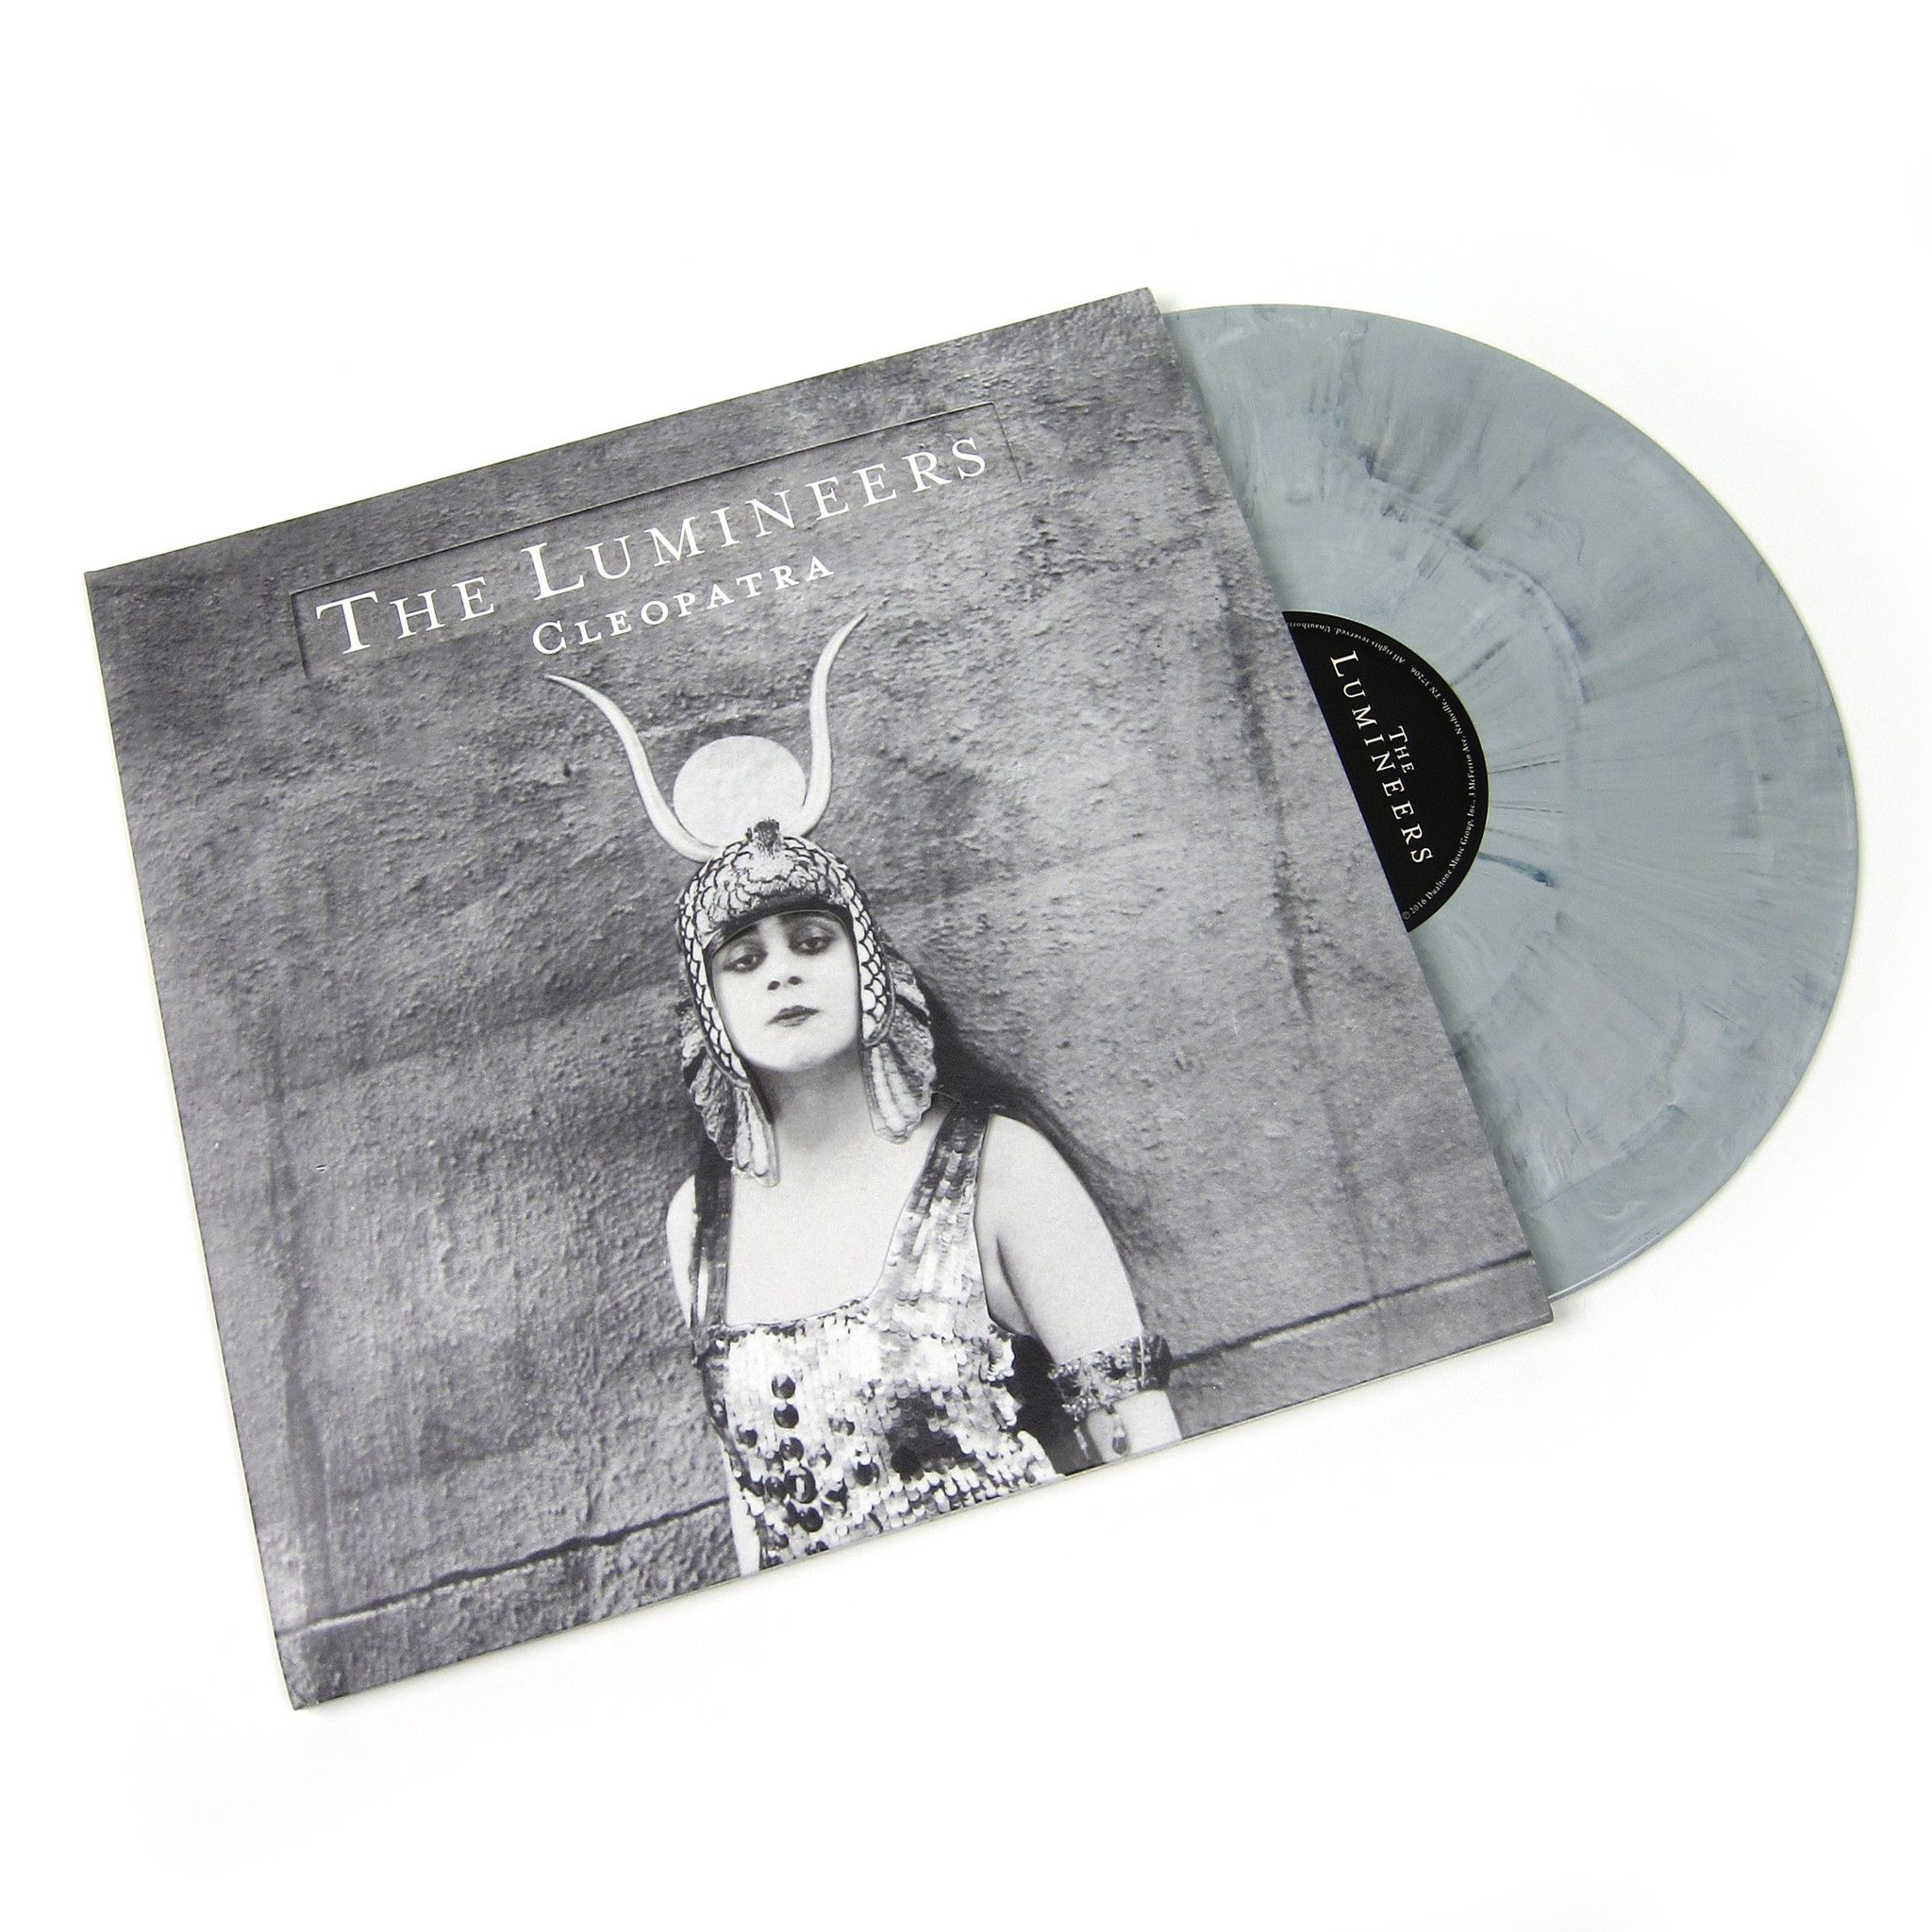 The Lumineers Cleopatra 180g Colored Vinyl Vinyl 2lp Vinyl Records Music Vinyl Club Vinyl